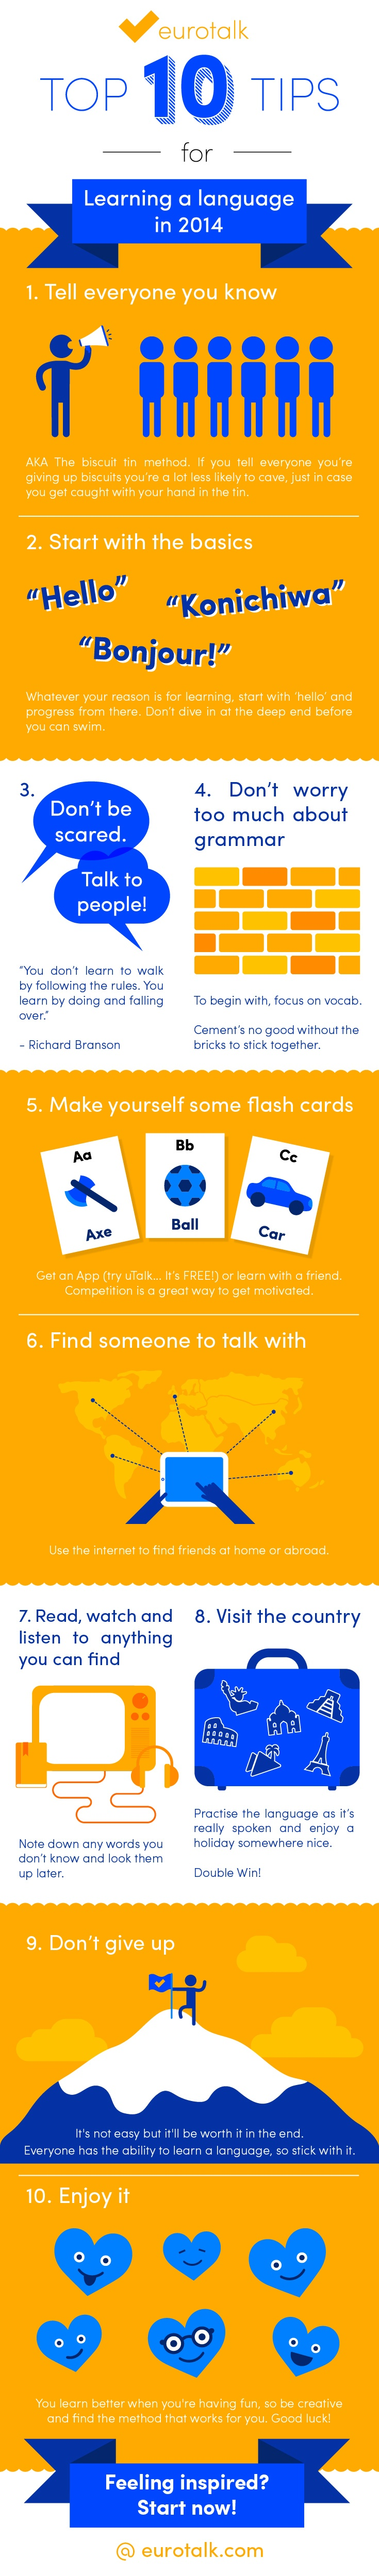 Top 10 Tips for Learning a Language Infographic